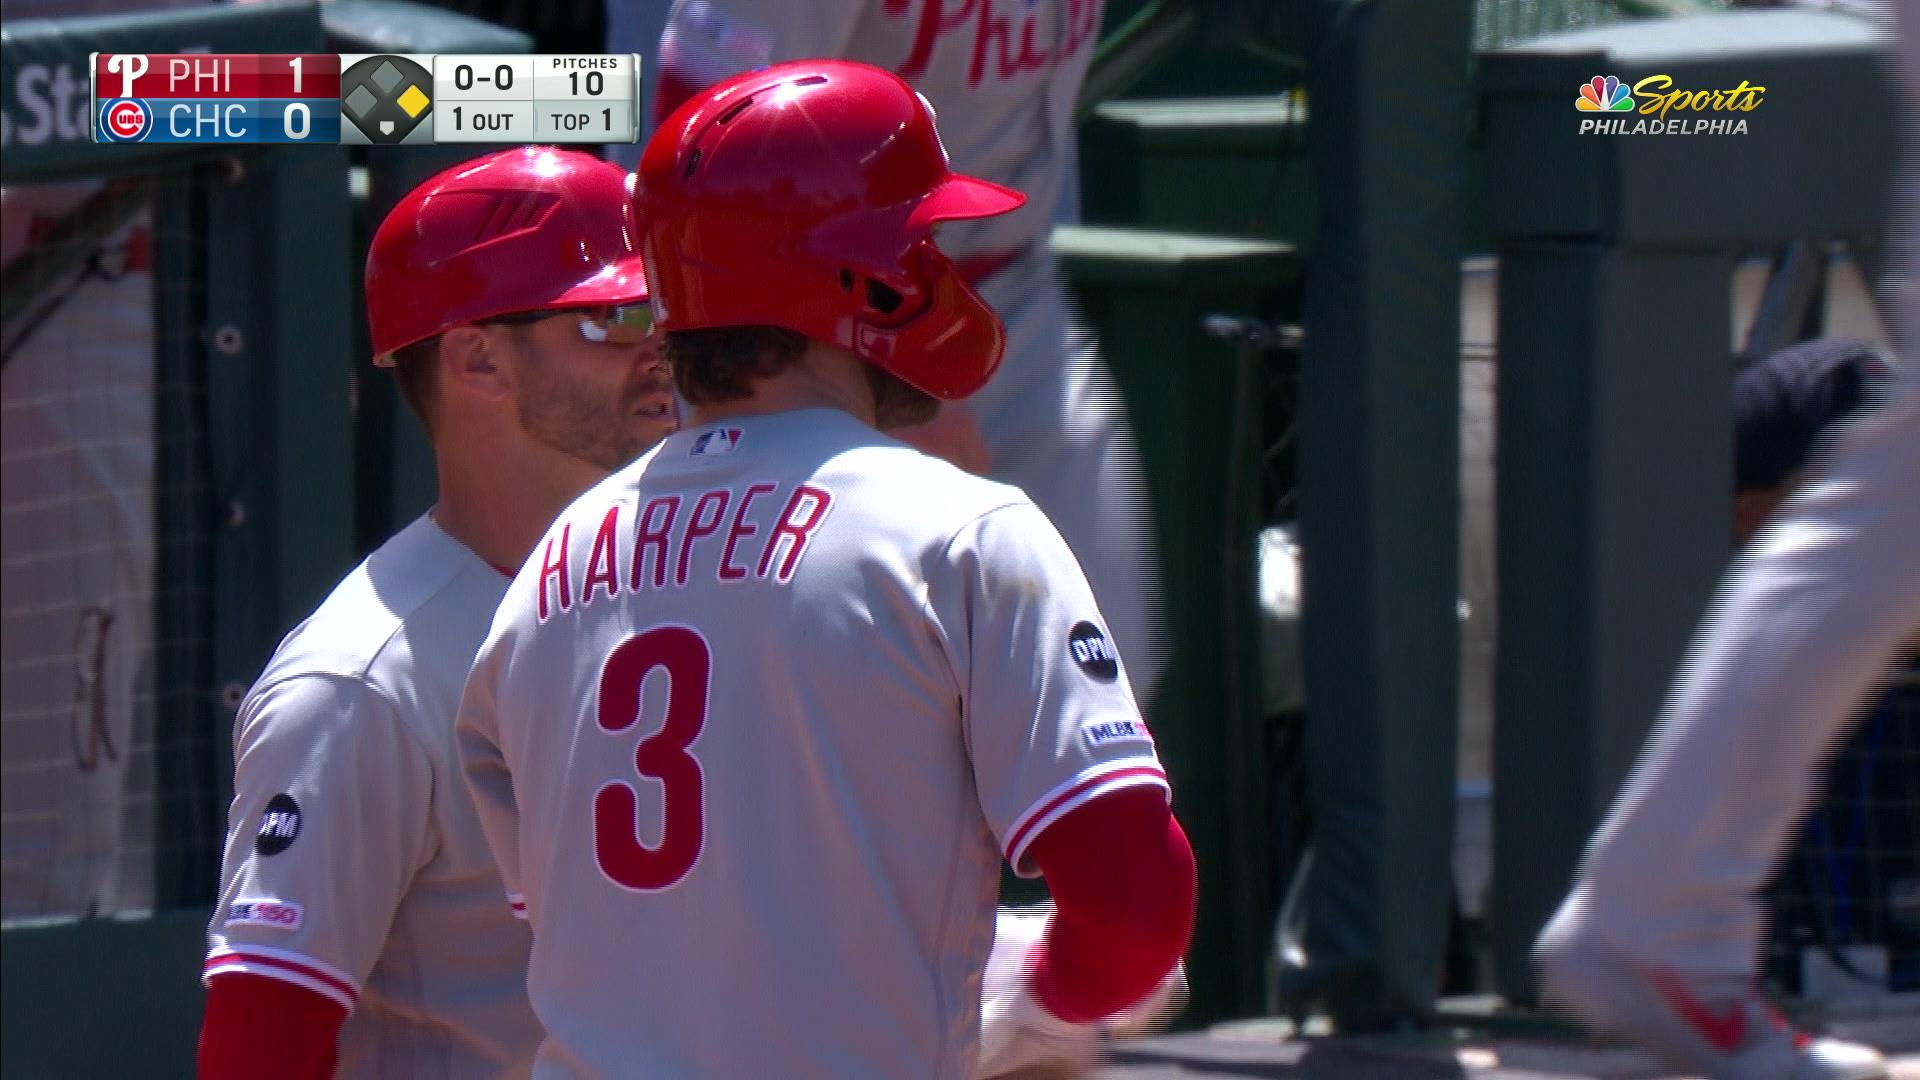 Bryce Harper delivers early in the first inning to give Phillies 1-0 lead